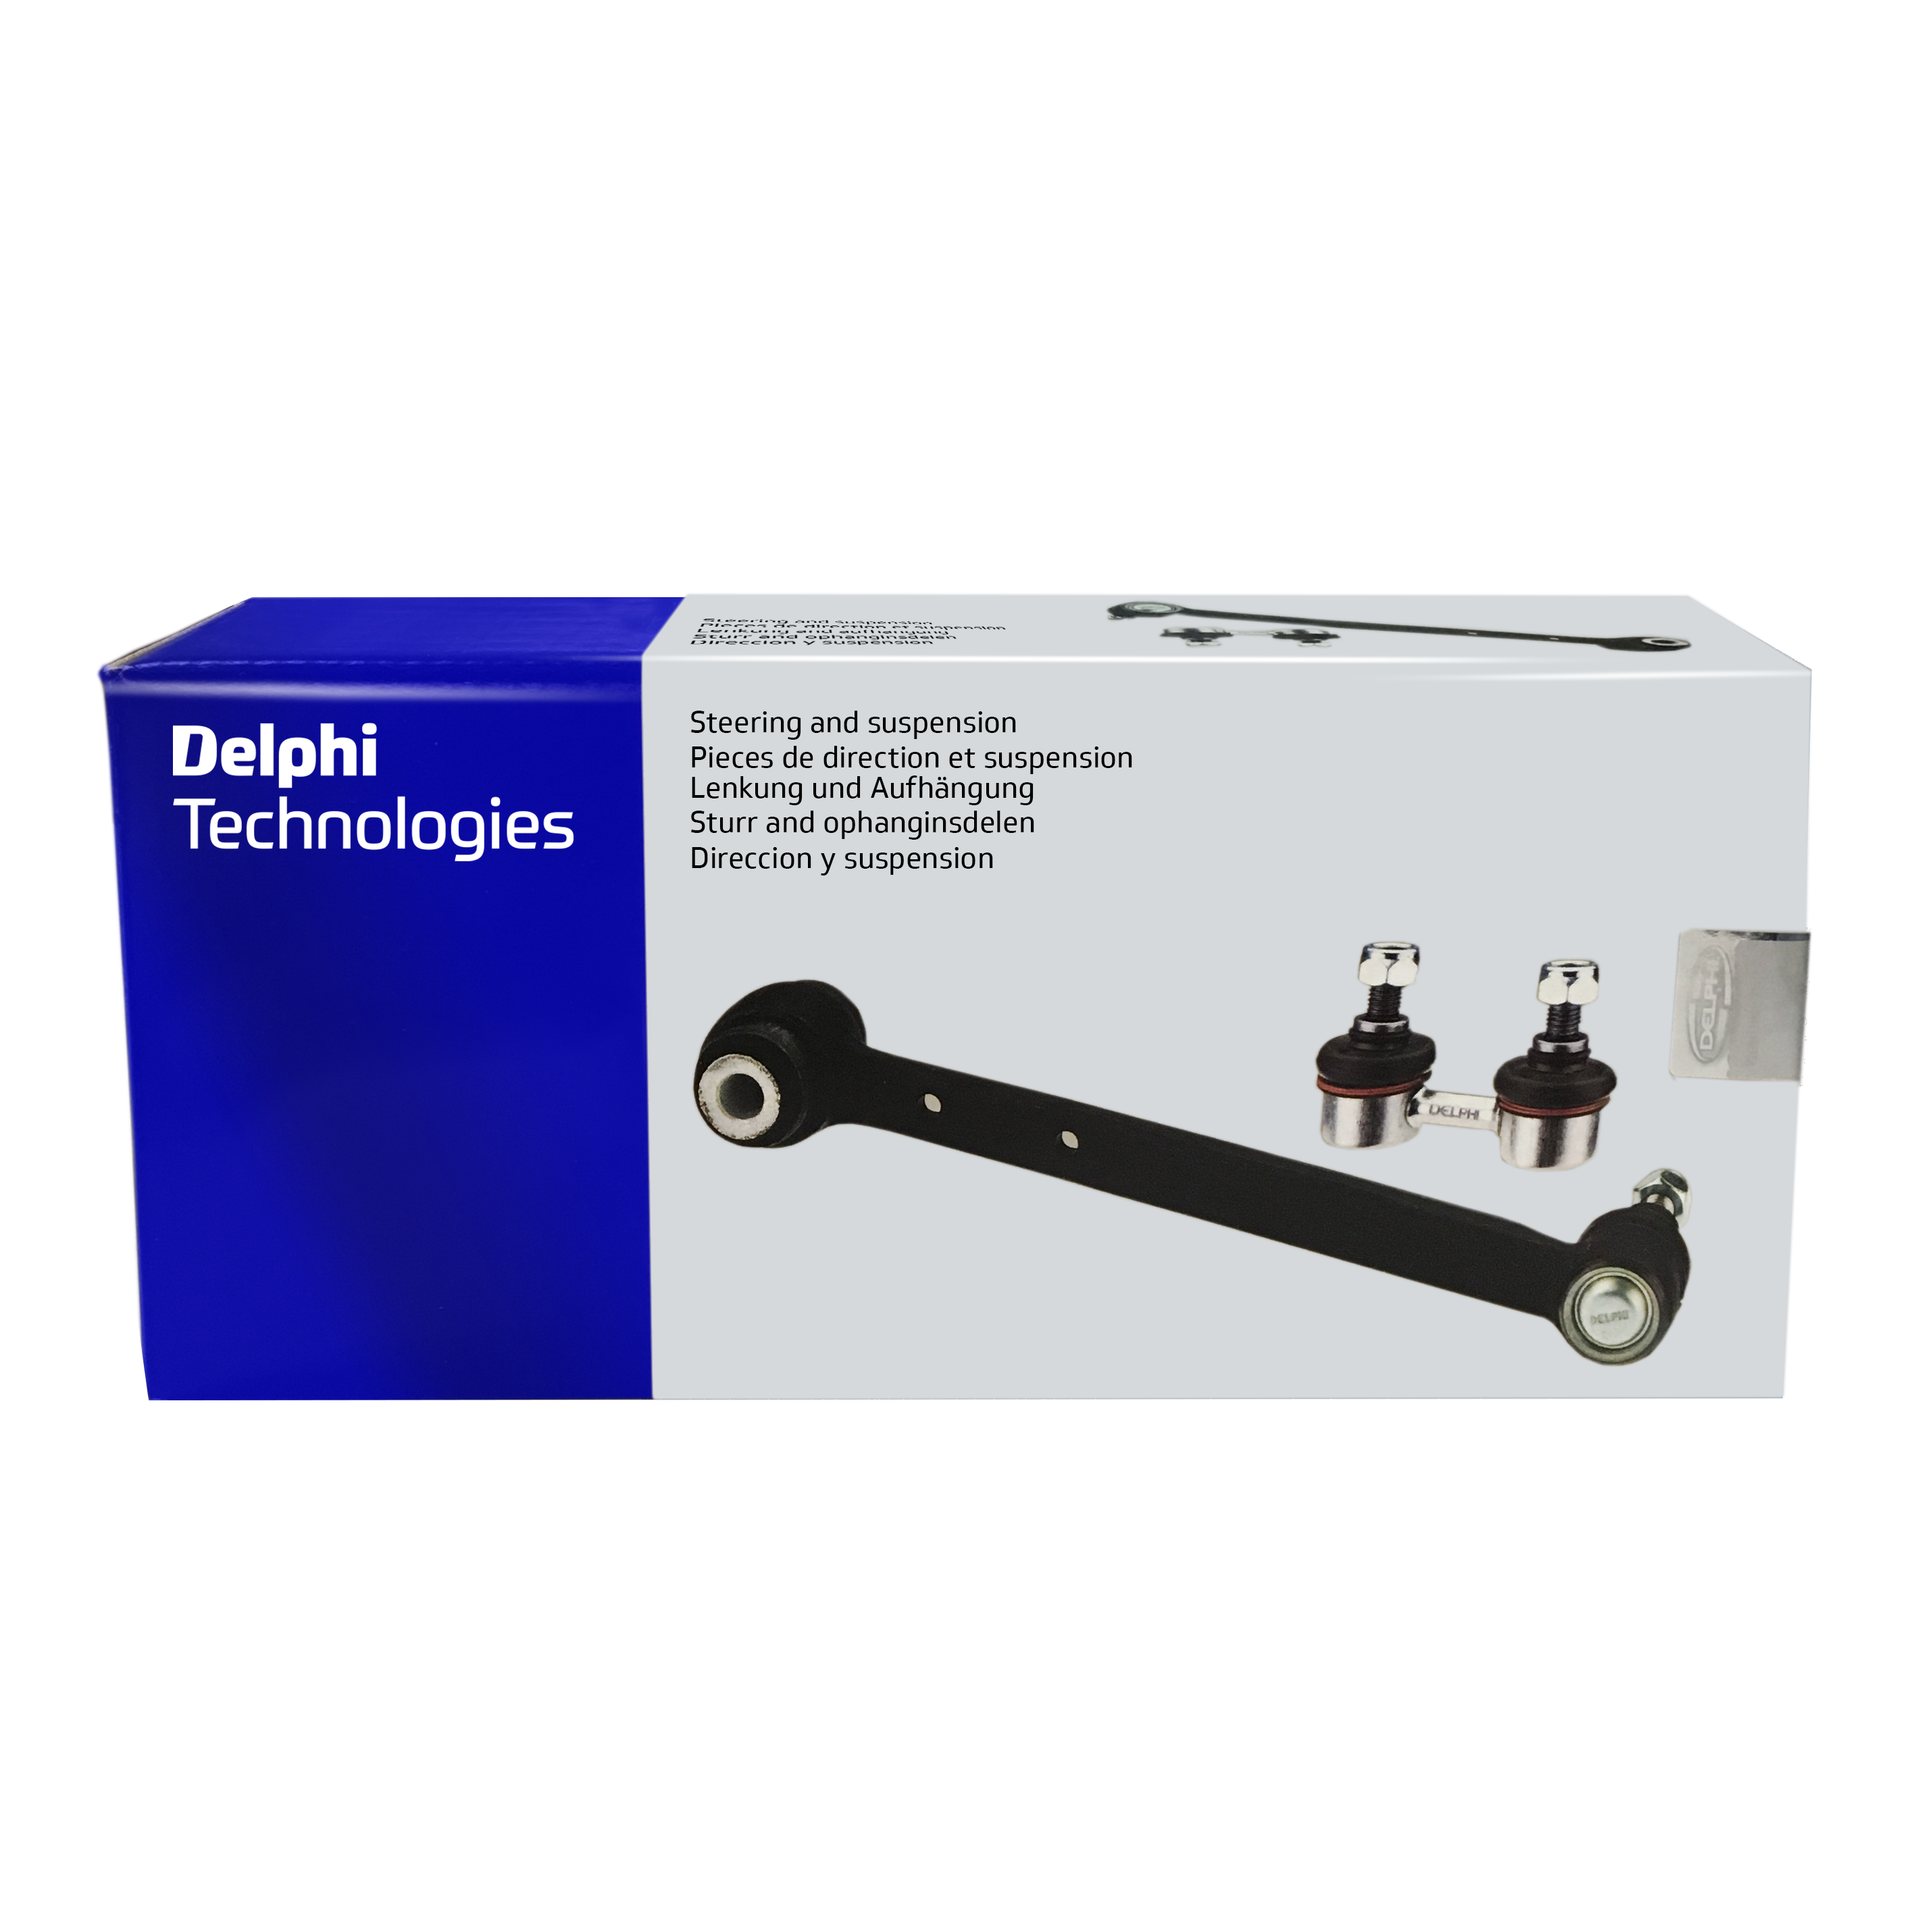 Delphi Technologies retail packaging